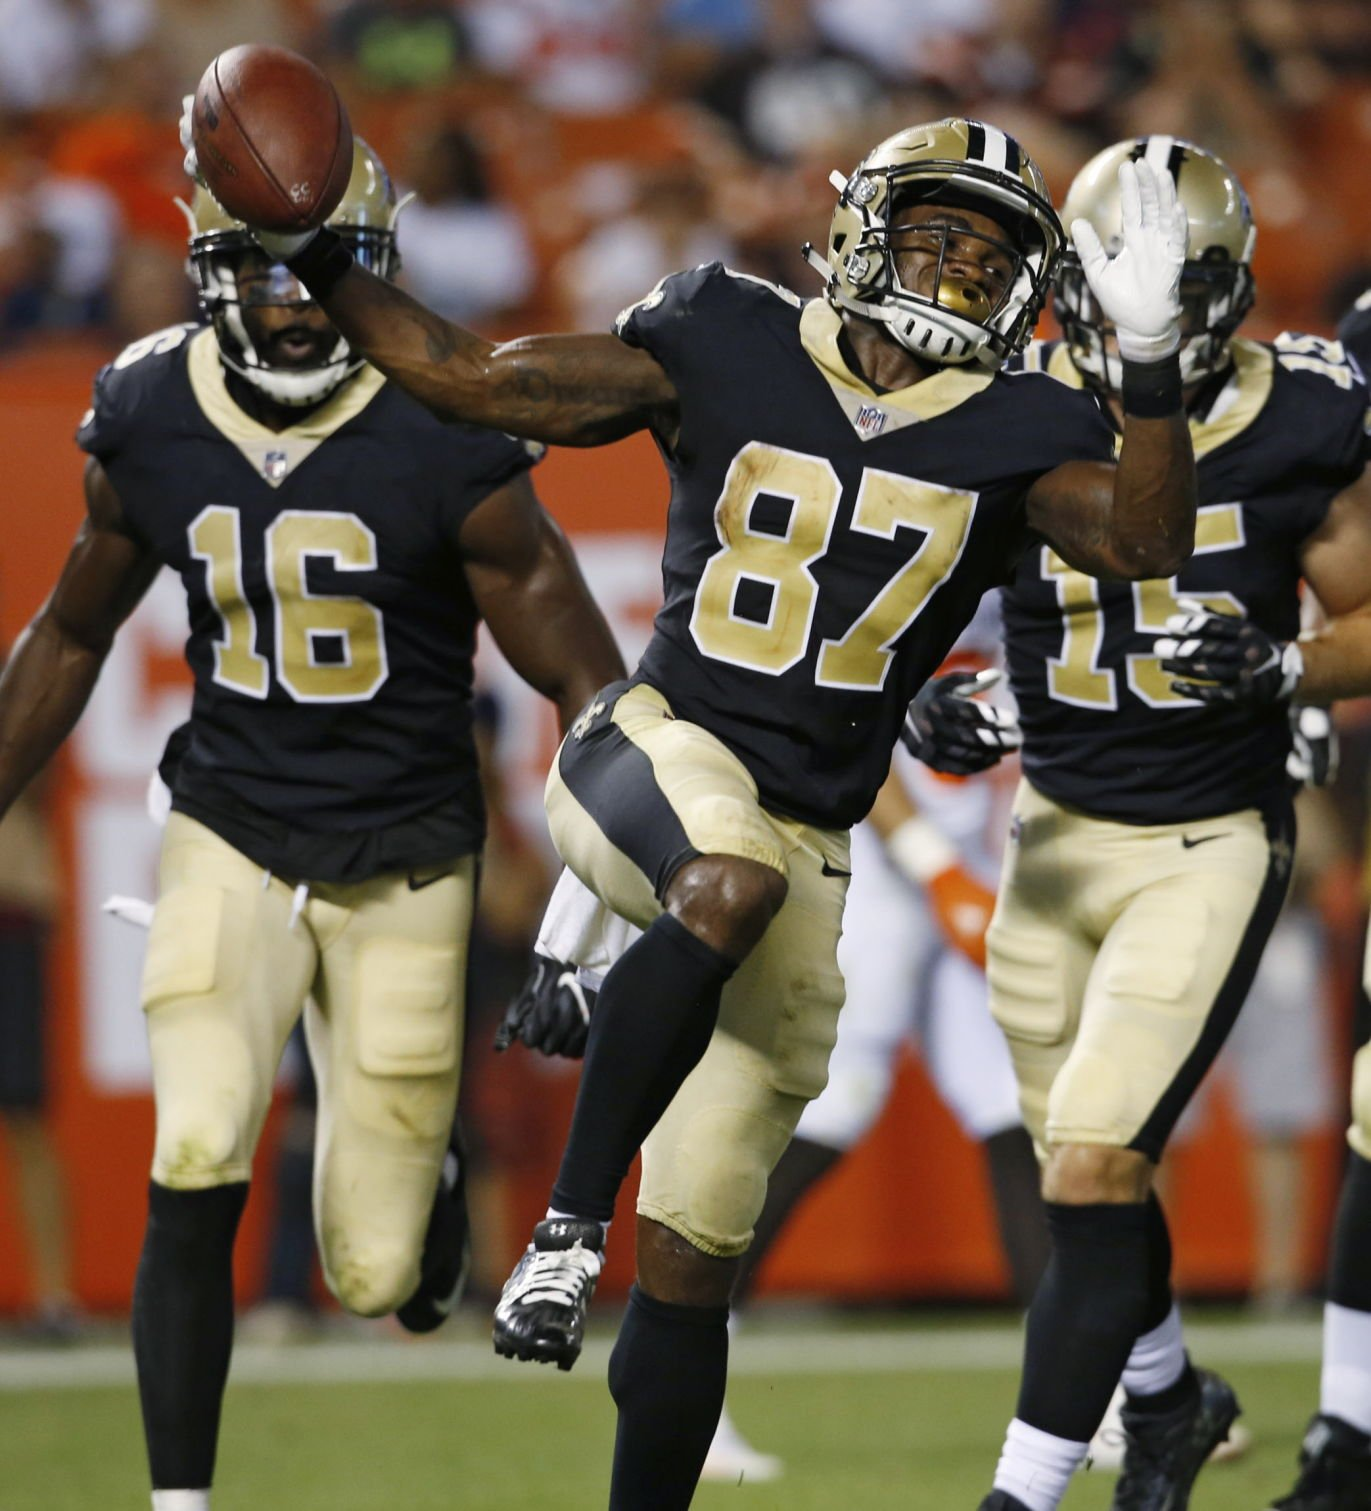 Saints fall at Cleveland, preseason losing streak reaches double digits